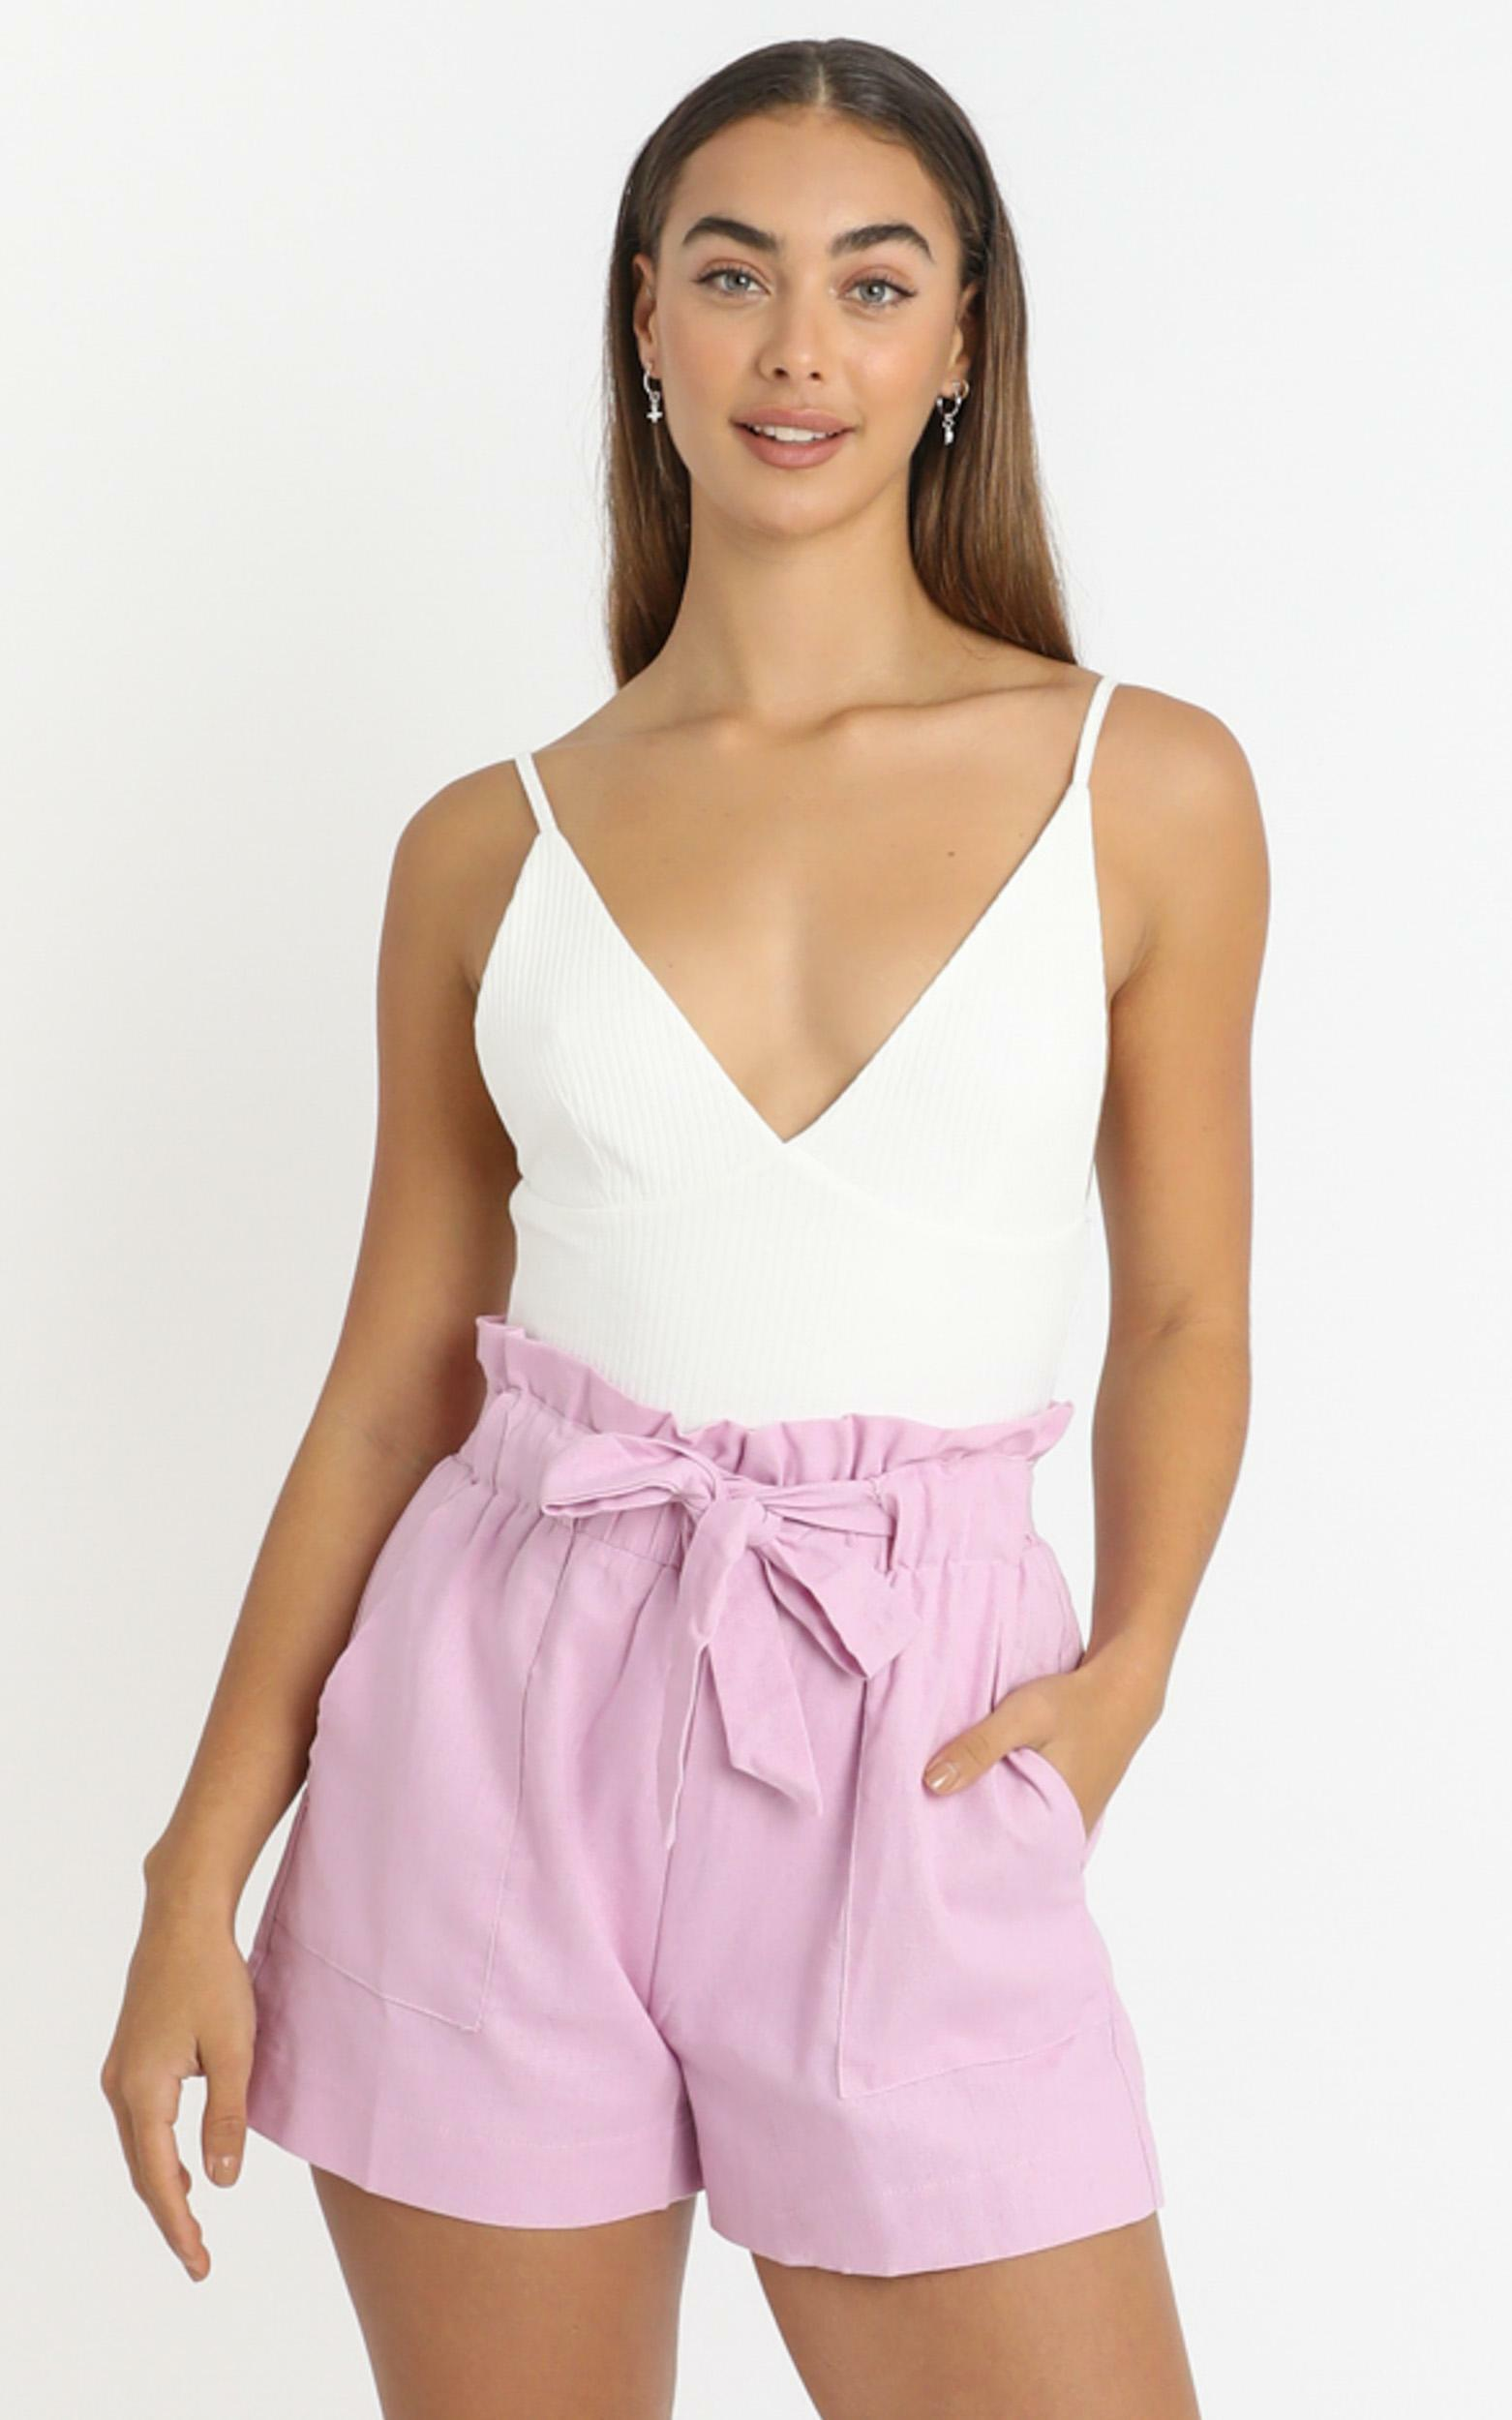 All Rounder Short in lilac - 6 (XS), PRL1, hi-res image number null